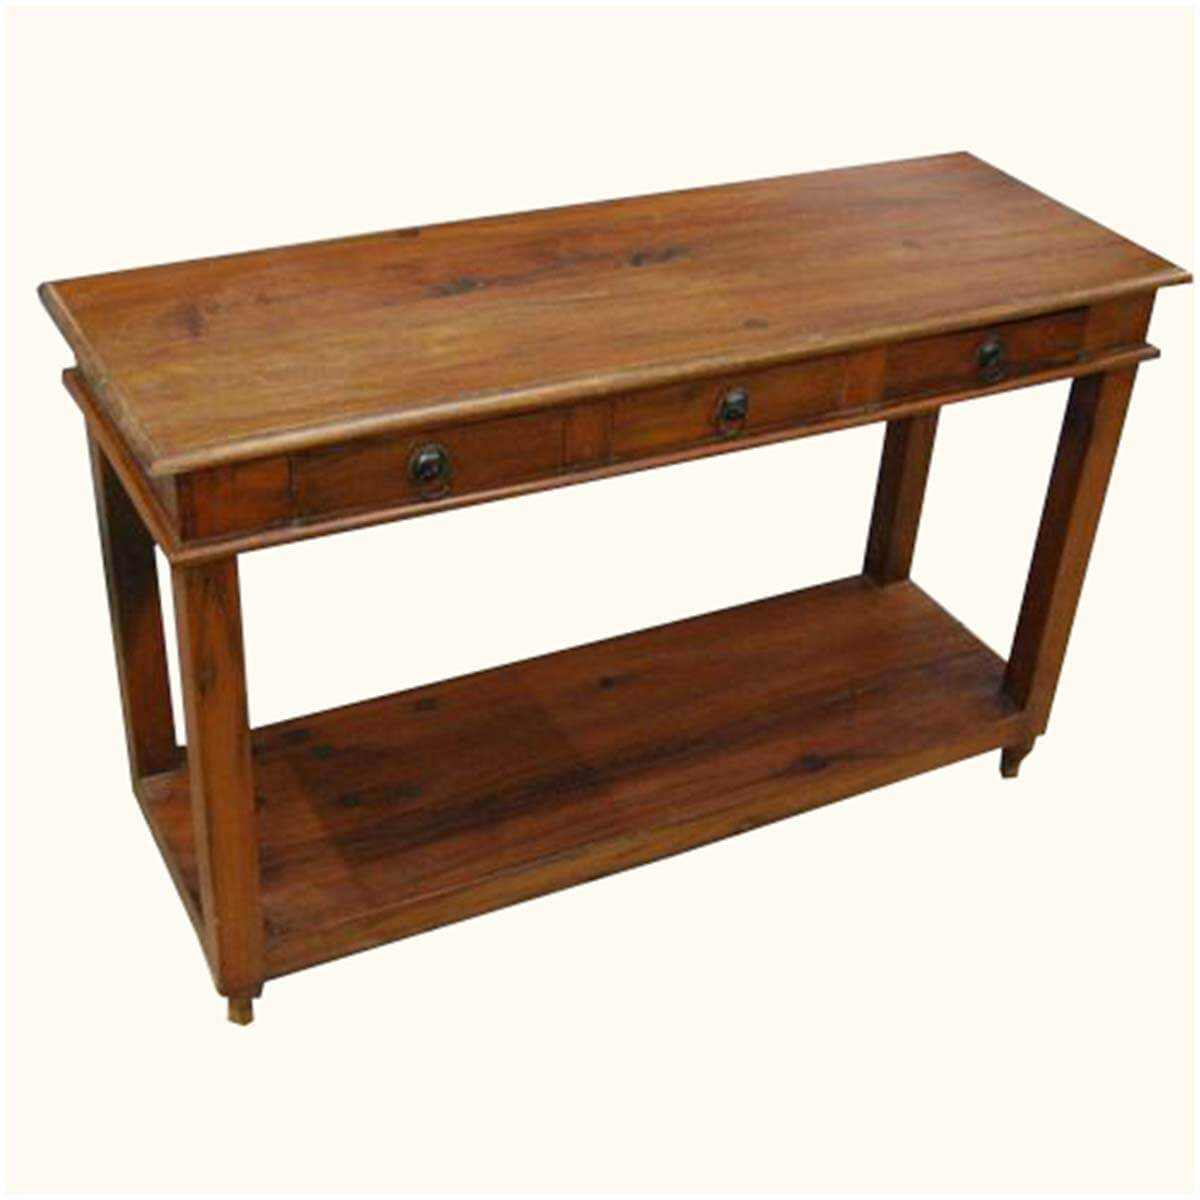 Marvelous photograph of Solid Wood Entry Sofa Hall Console Foyer Table w 3 Drawers with #B27F19 color and 1200x1200 pixels